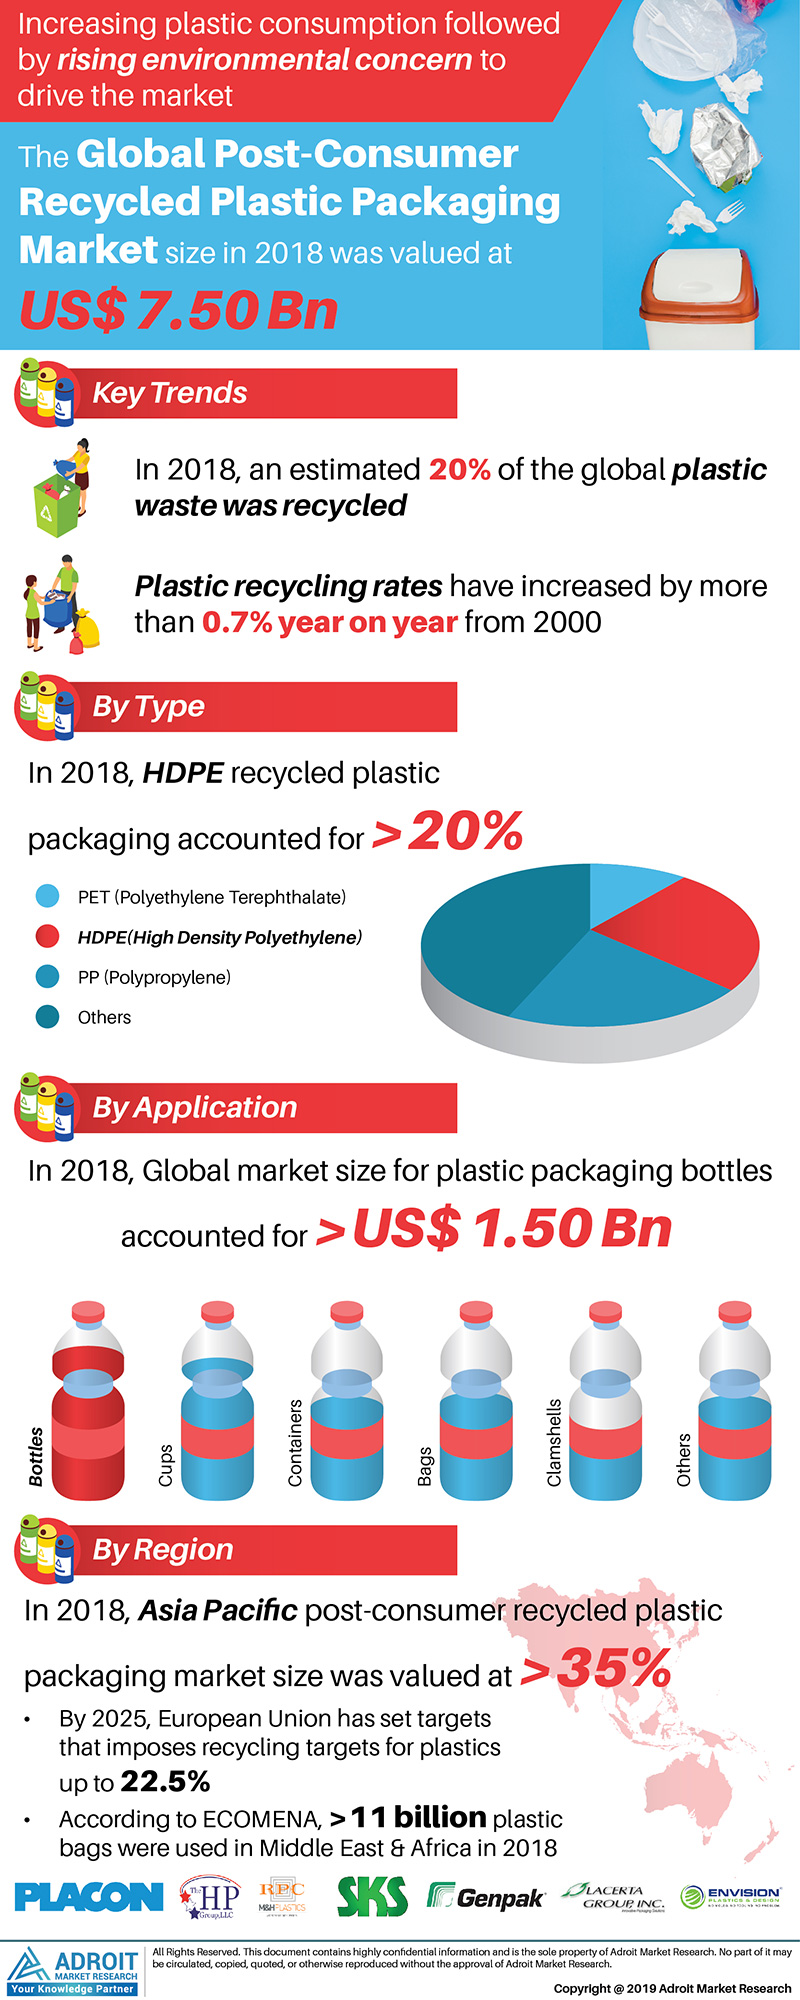 Global Post-Consumer Recycled Plastic Packaging Market Trends 2018, by Type HDPE, PP, by Application, By Region, and Forecast 2019 to 2025